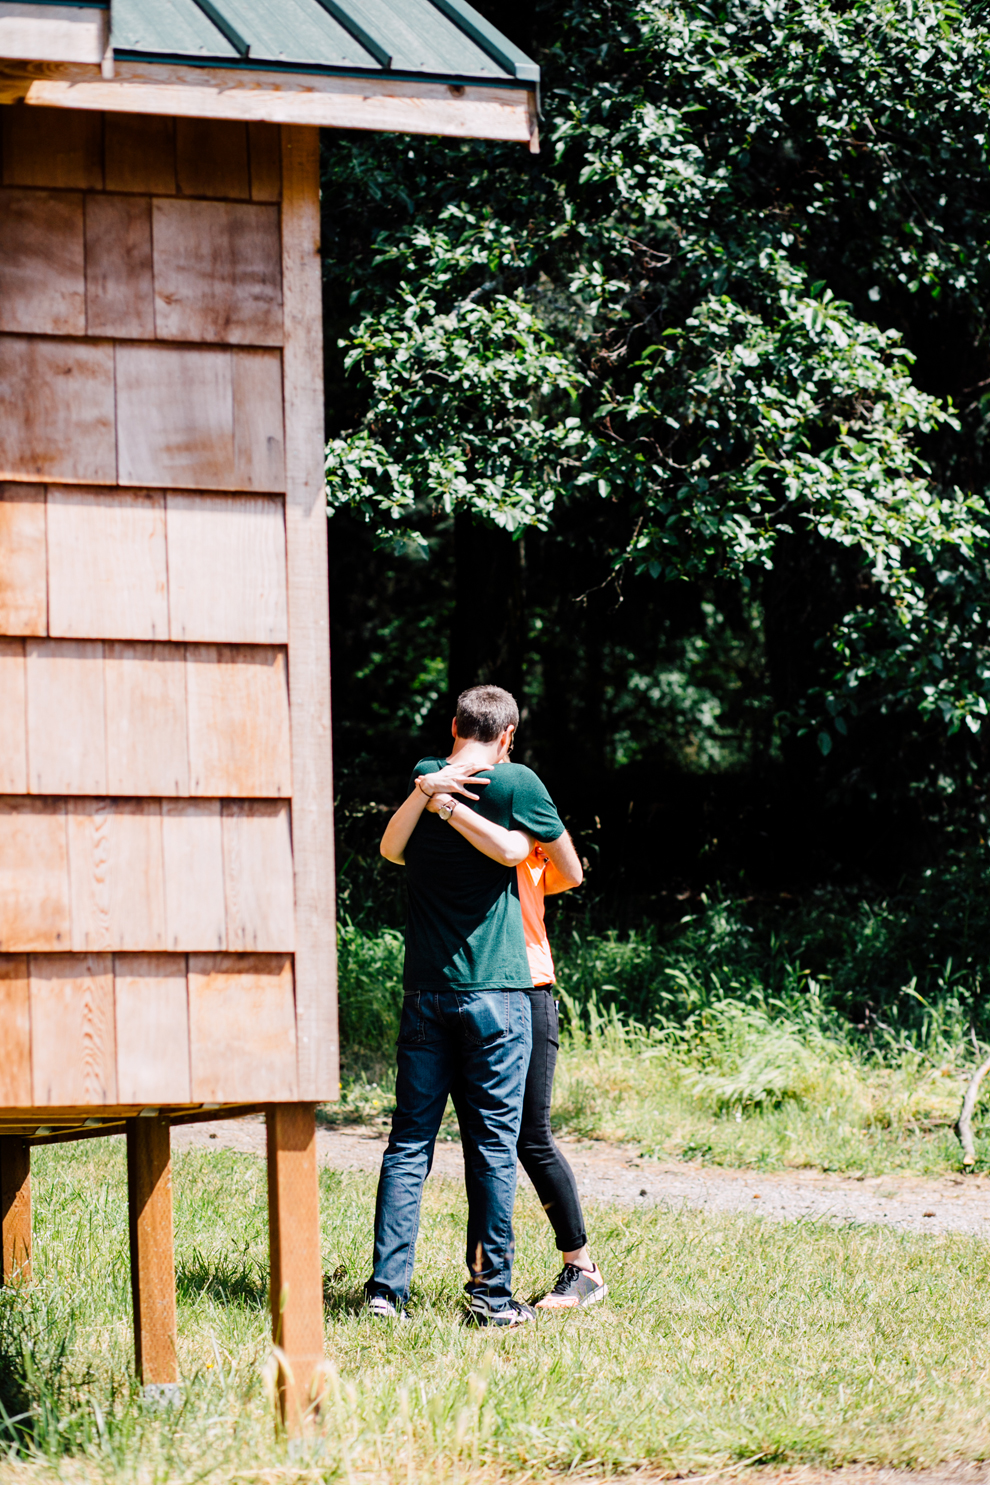 014-orcas-island-engagement-proposal-camp-orkila-katheryn-moran-photography.jpg